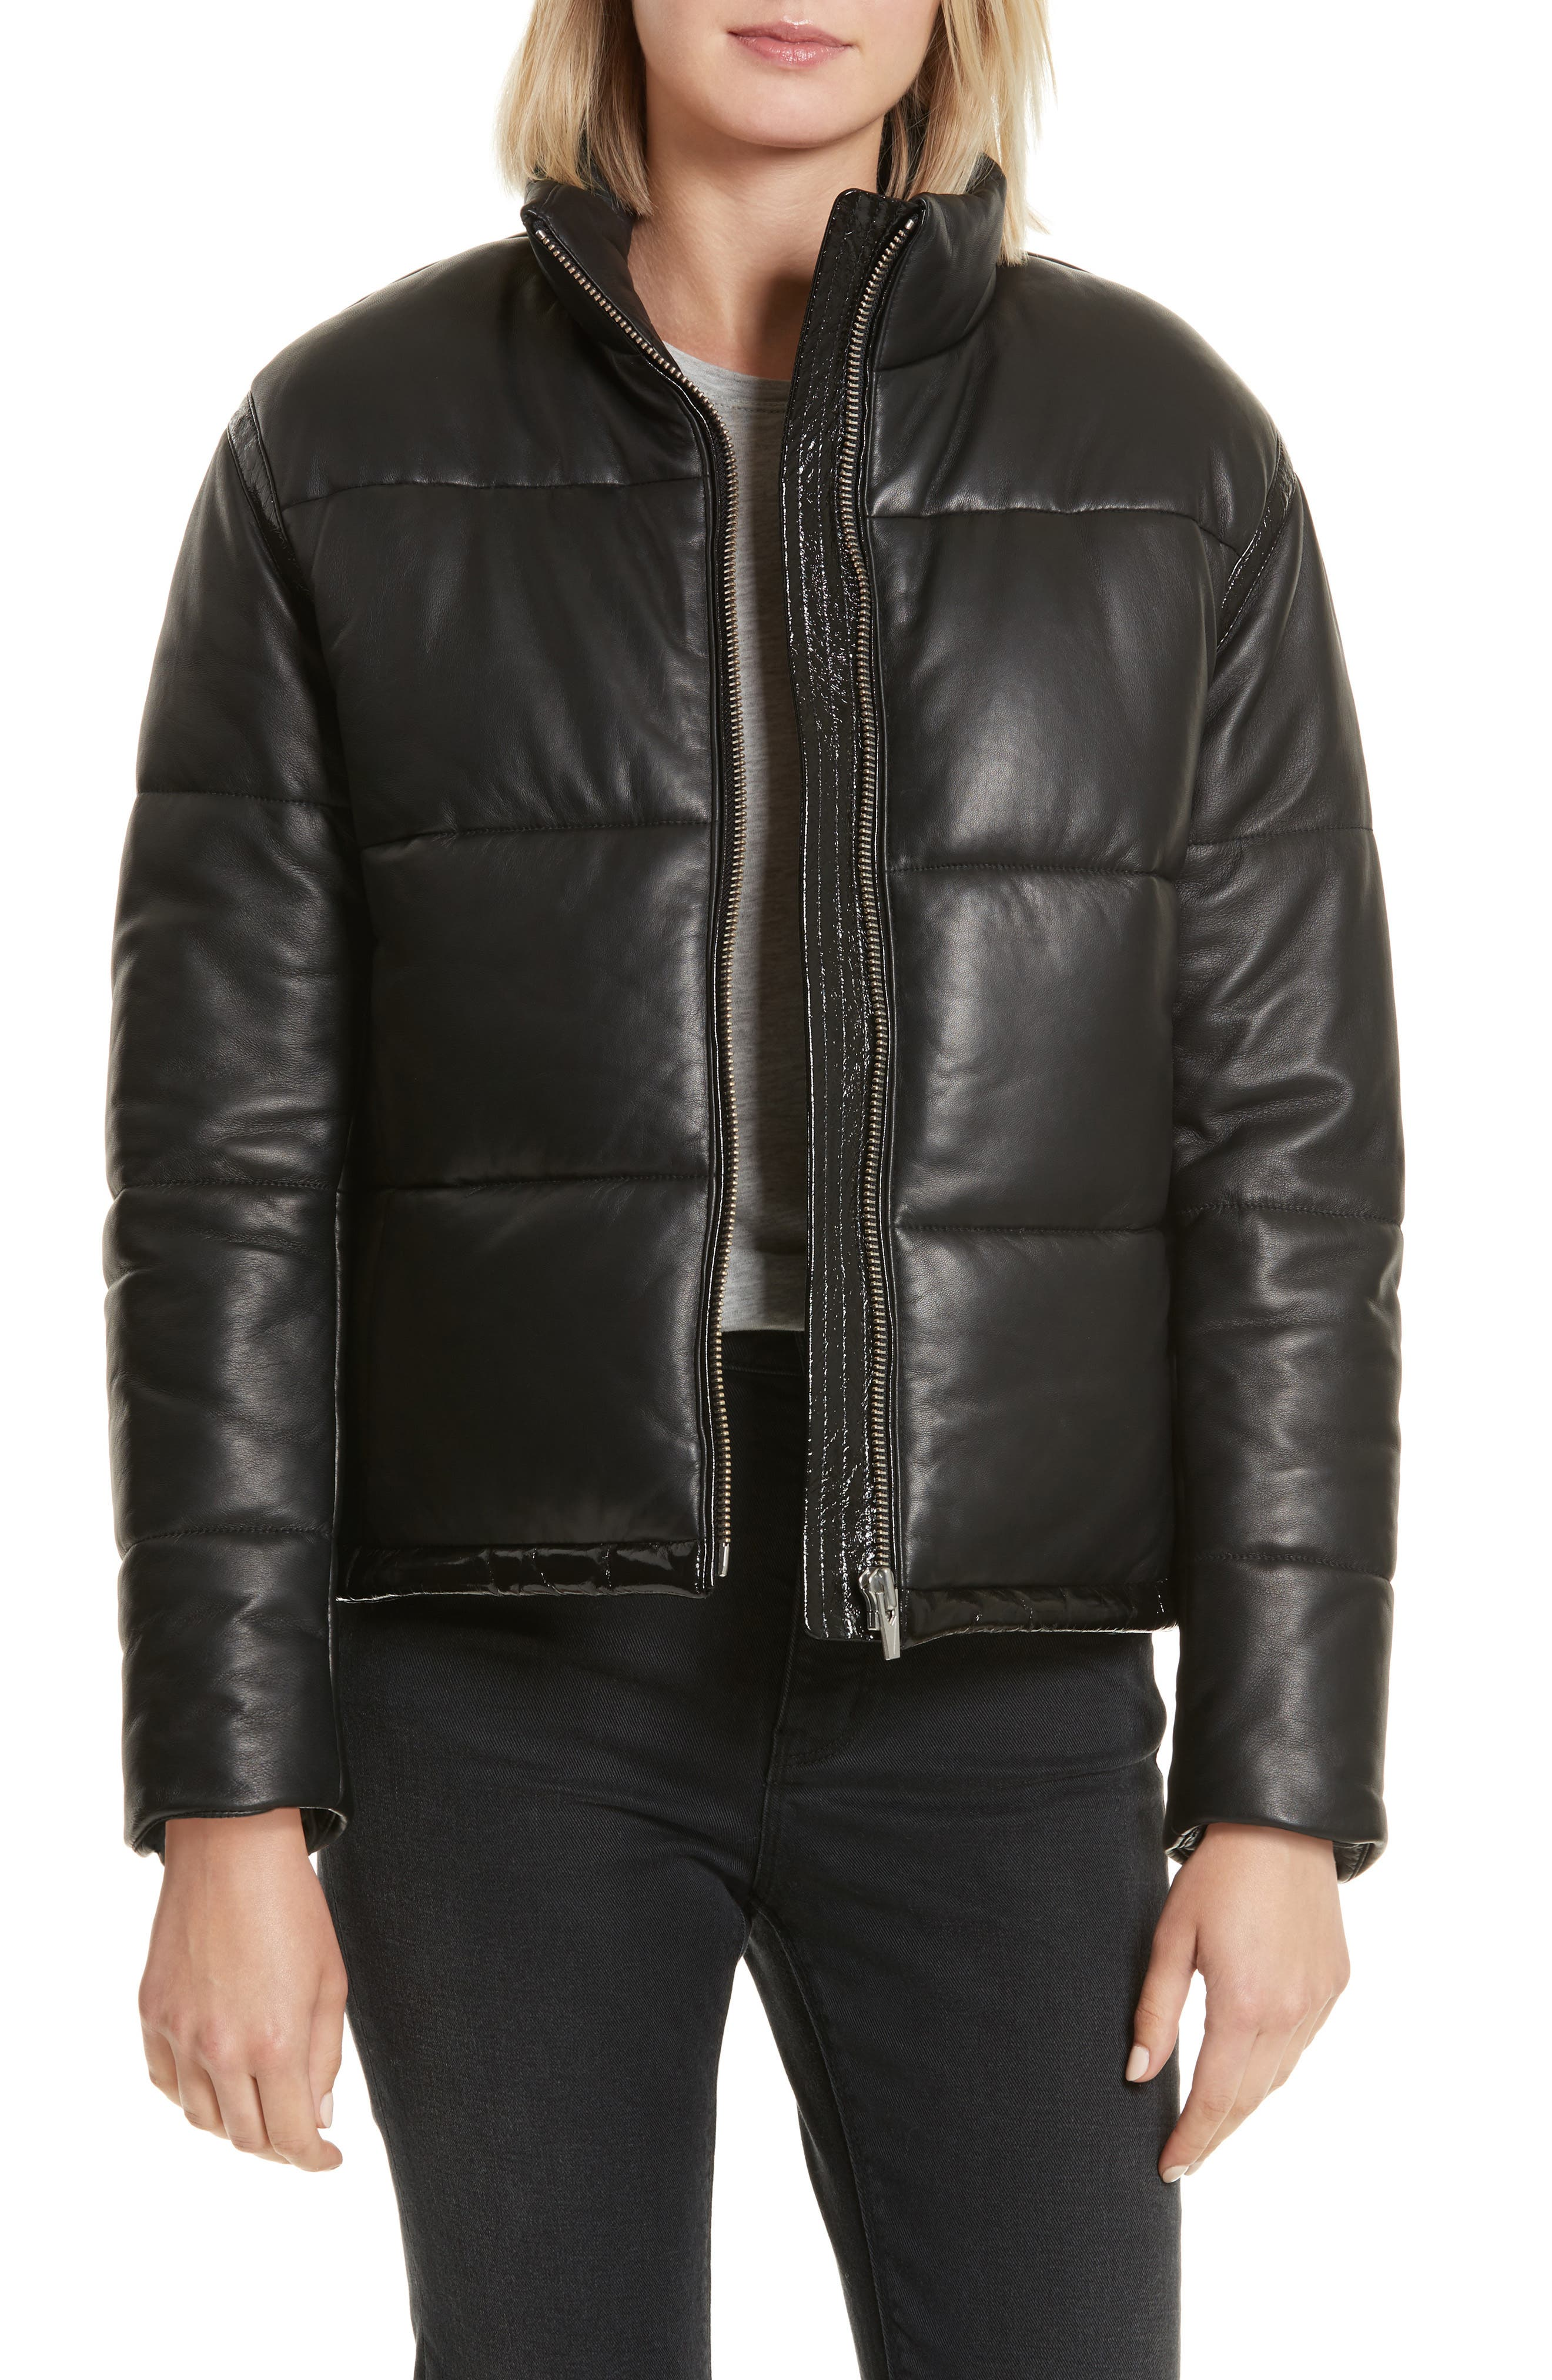 Power Puff Leather Jacket,                             Main thumbnail 1, color,                             001